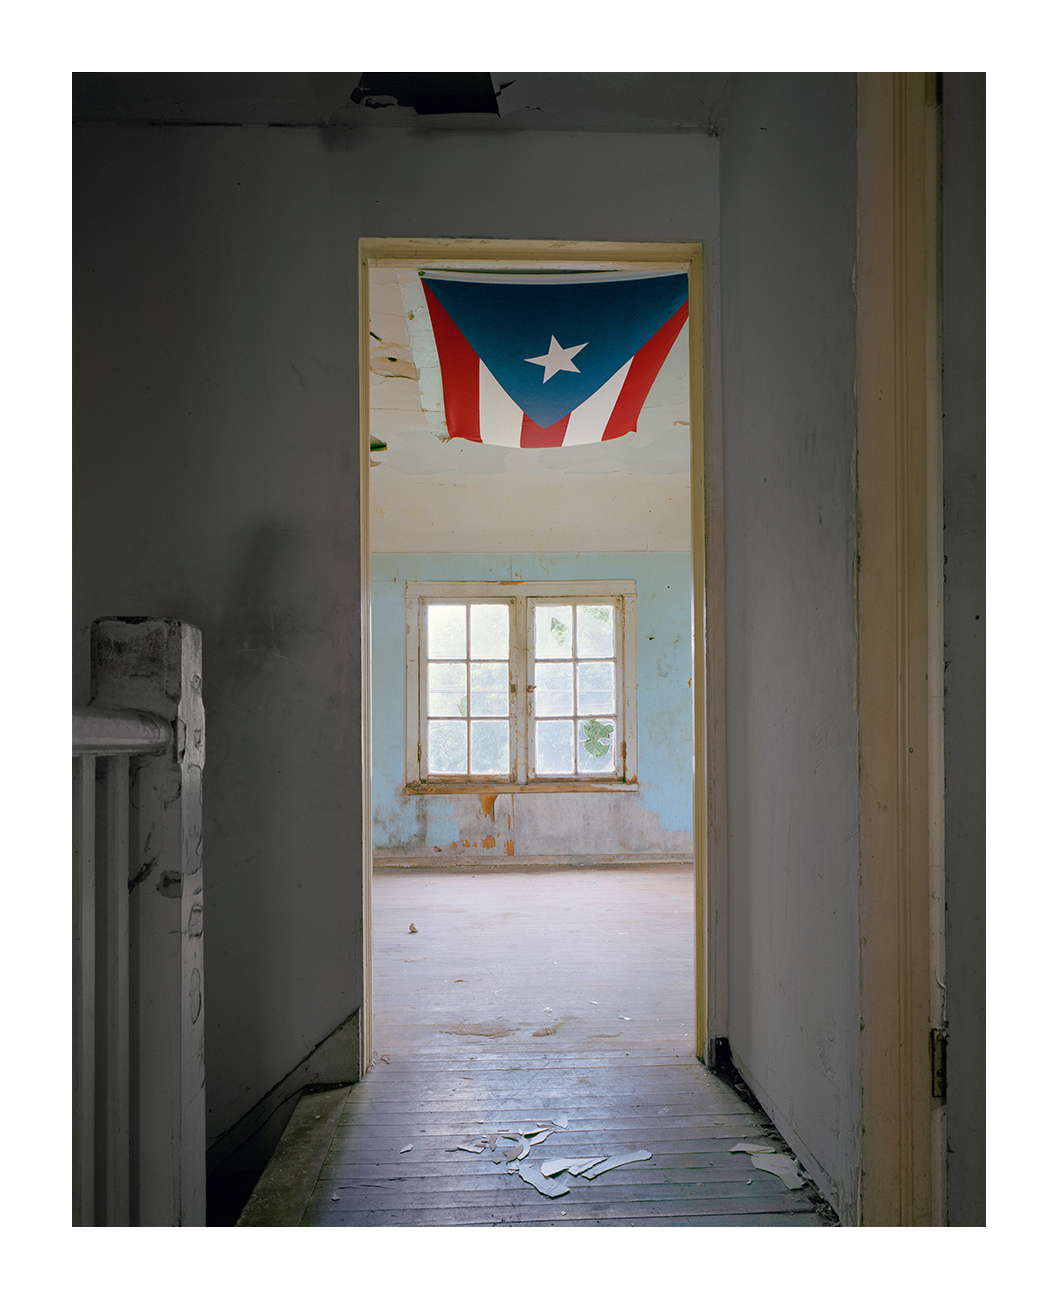 Flag on Ceiling, Abandoned House, Marktown, East Chicago IN 2003